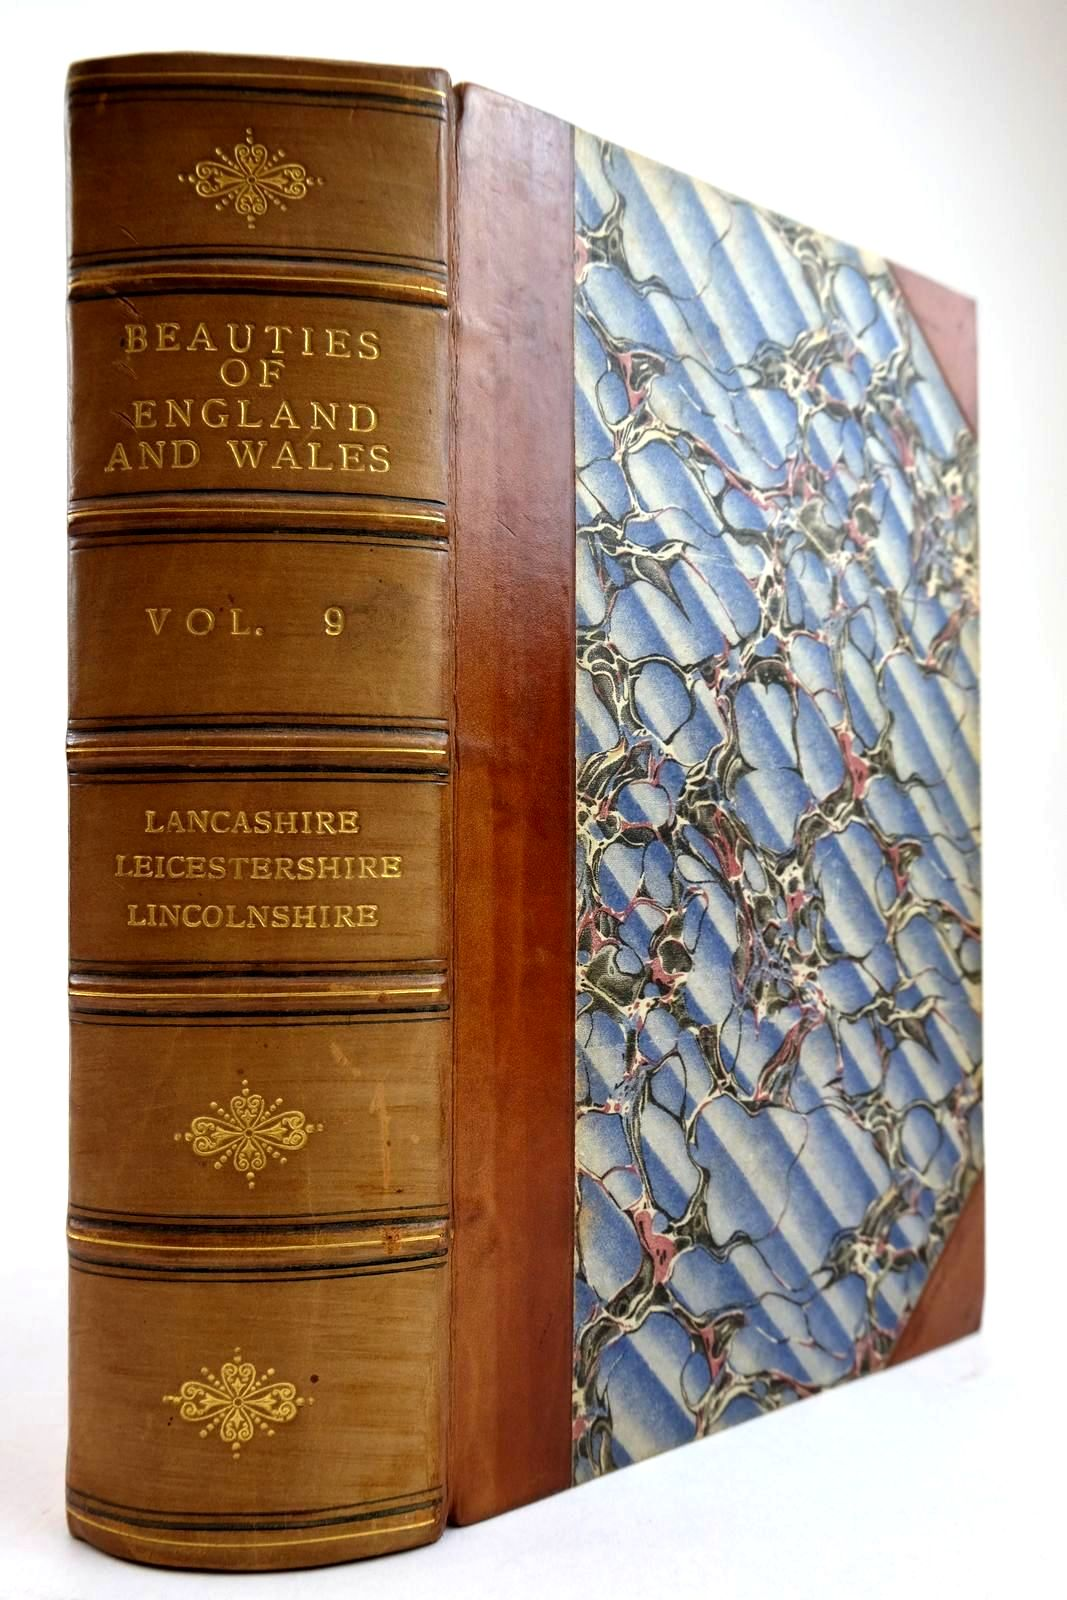 Photo of THE BEAUTIES OF ENGLAND AND WALES VOL. IX- Stock Number: 2134257